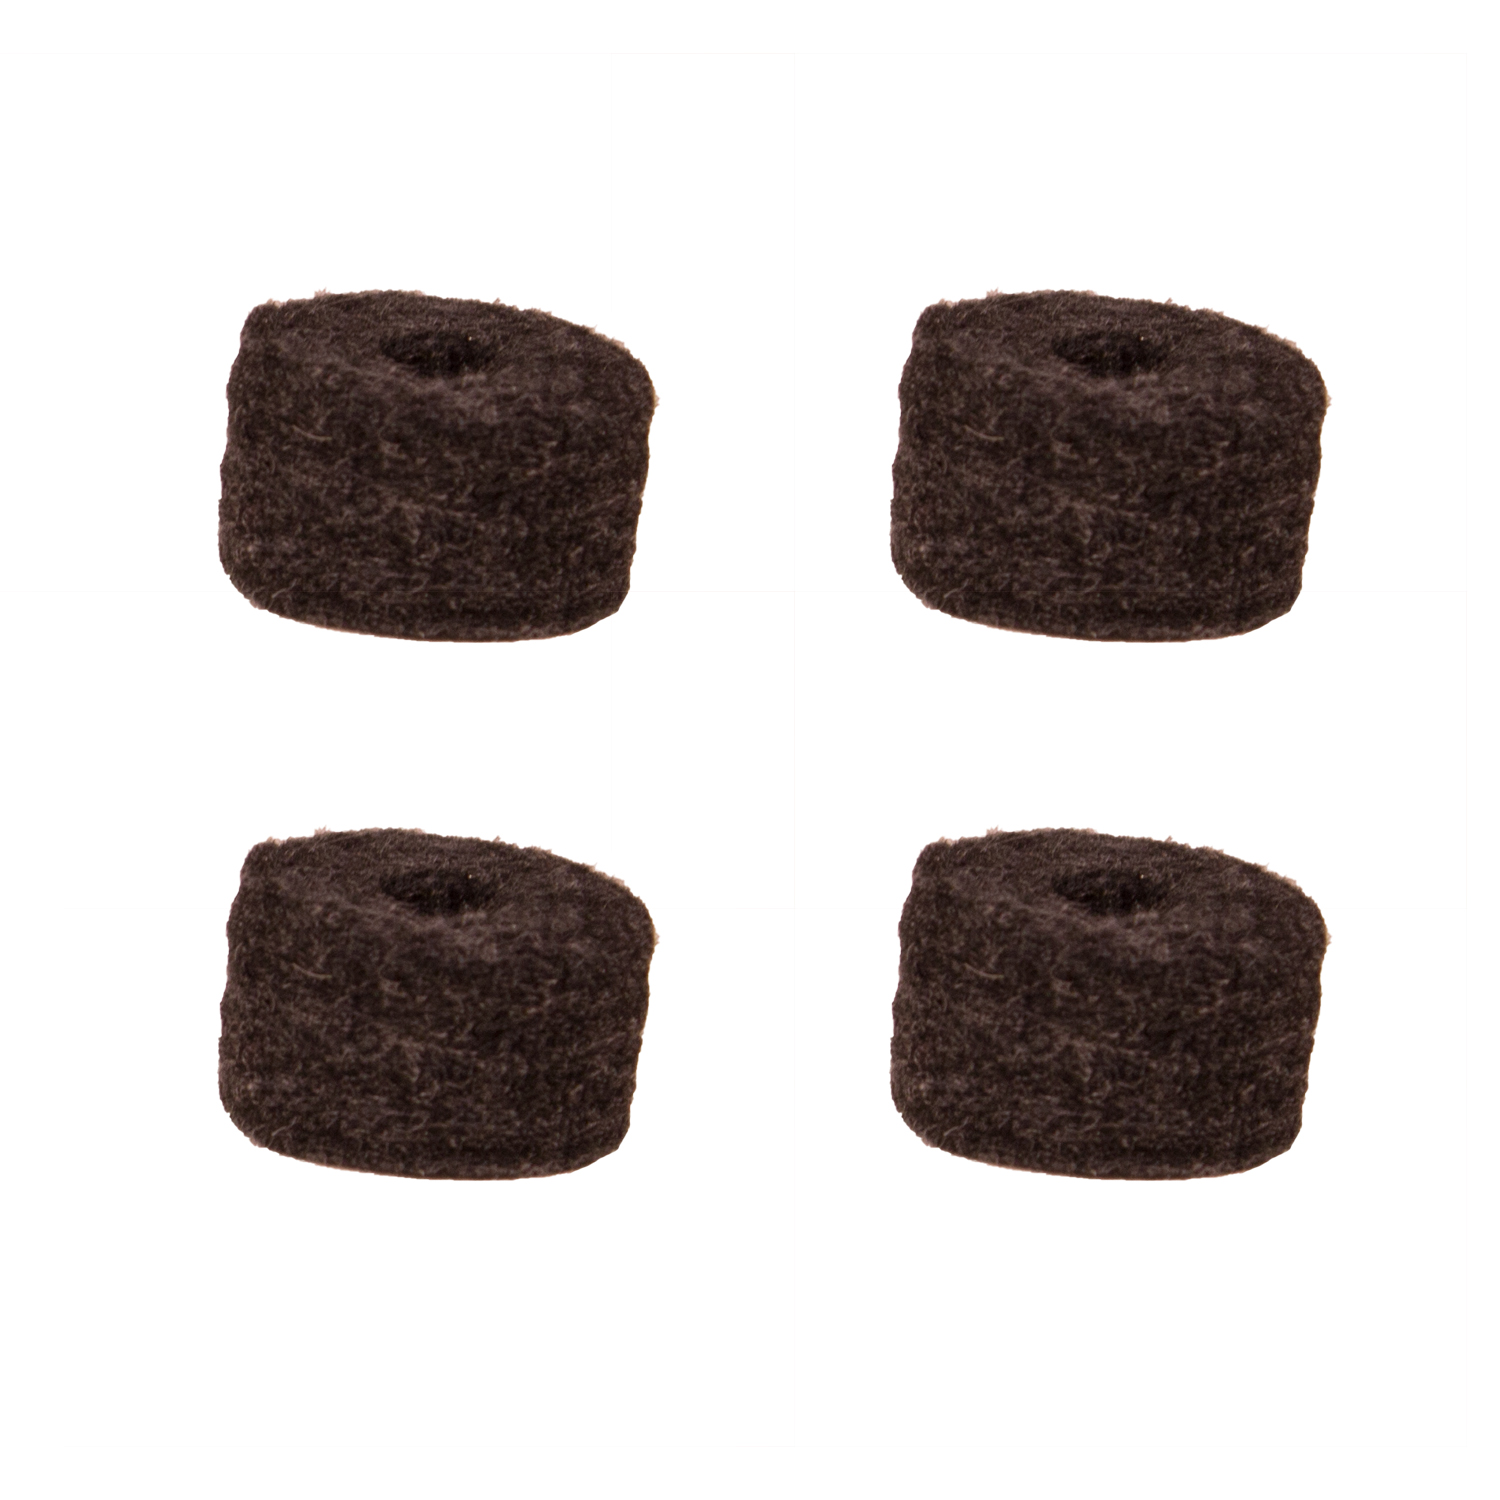 Cymbal Felt - Large 4 Pack